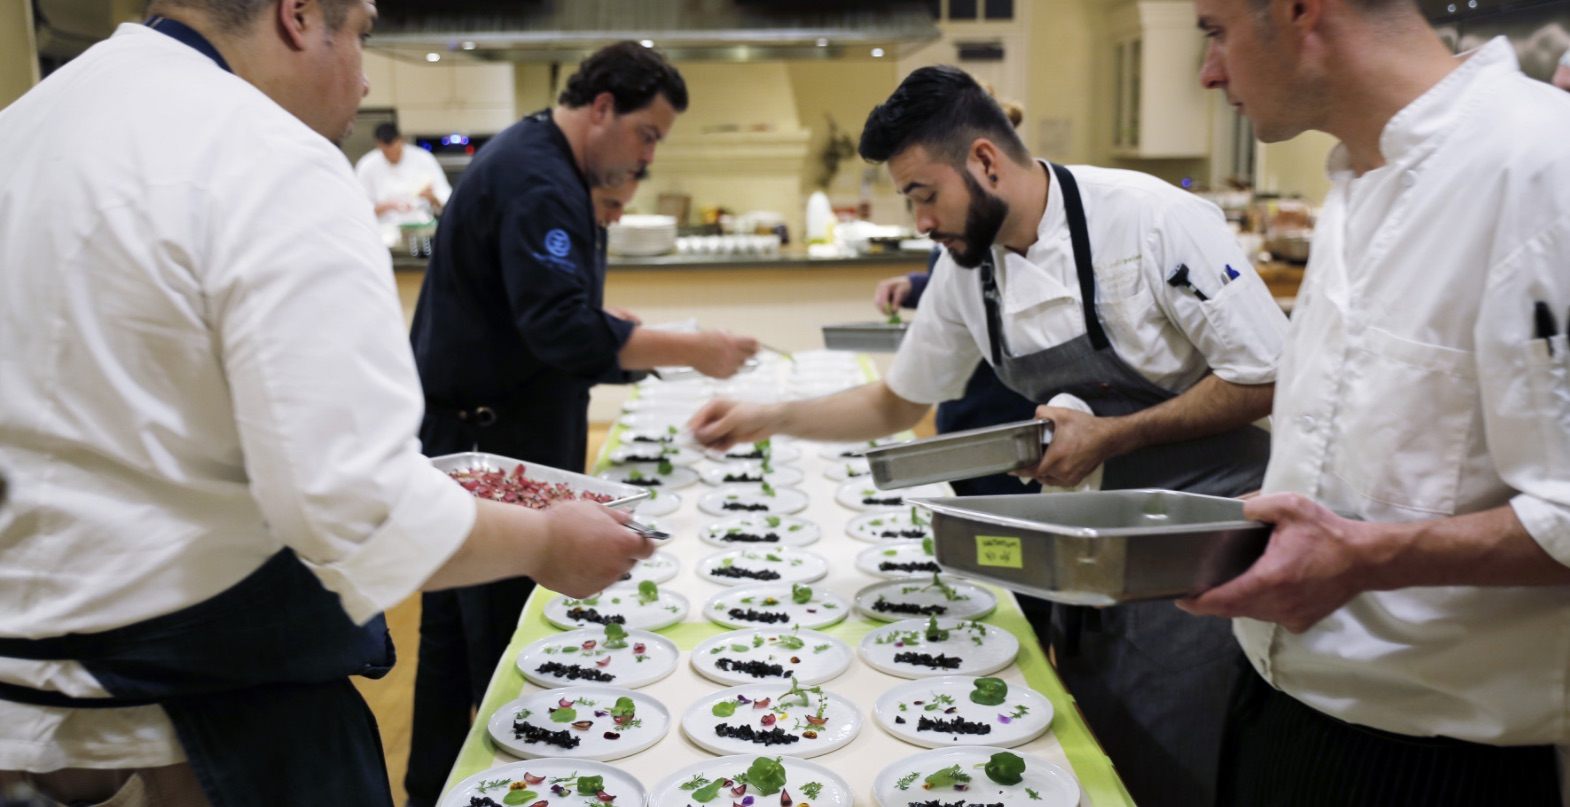 Chefs work the line at the 2016 Lexus Culinary Classic